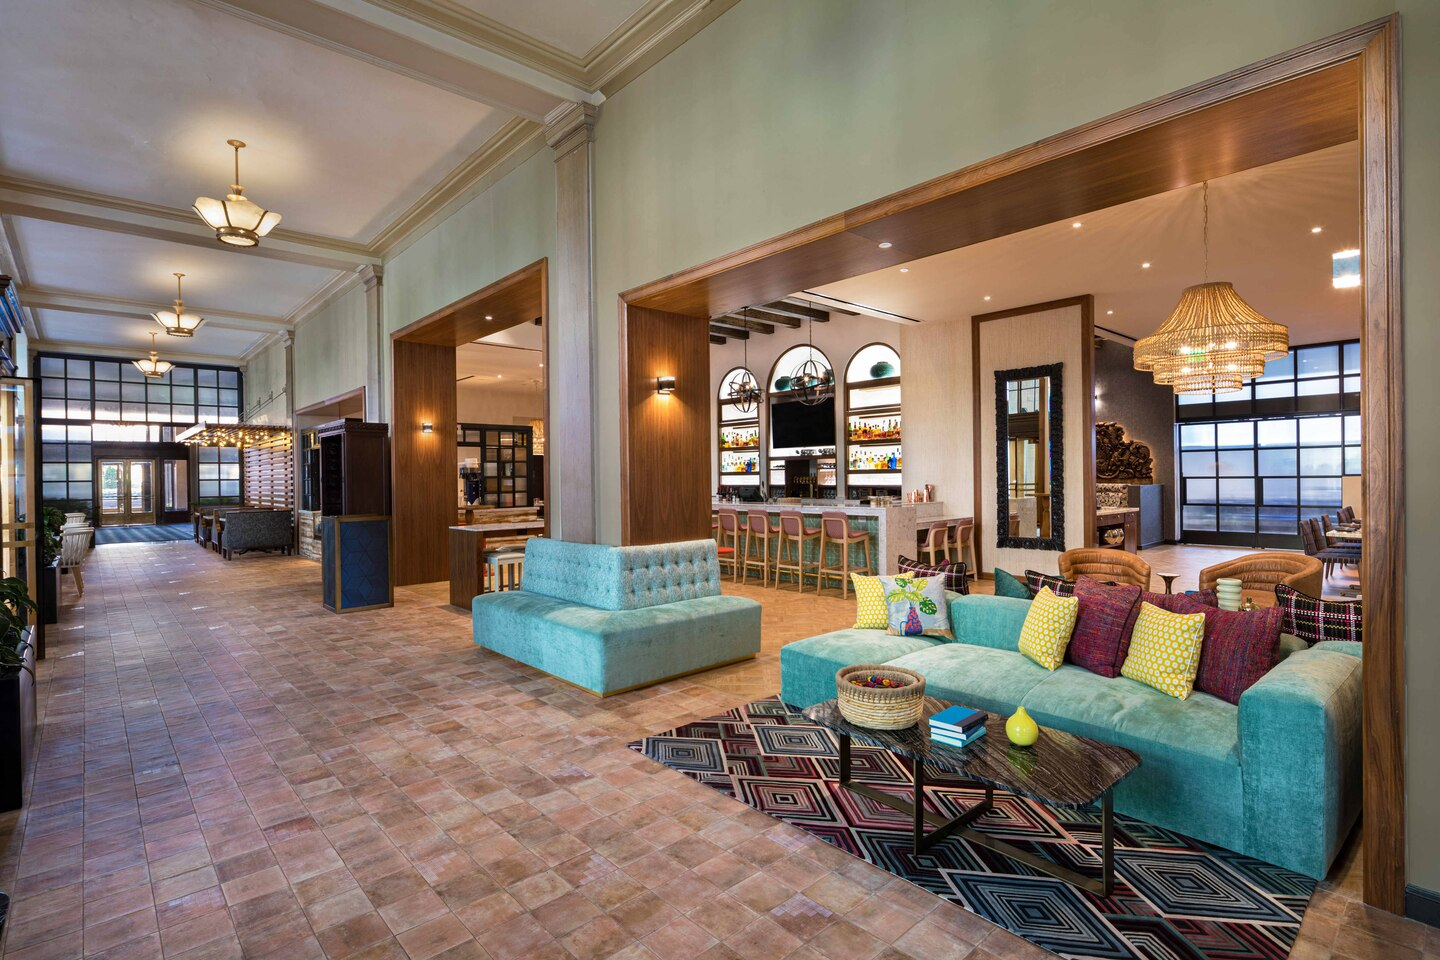 The Notary Hotel lobby and common space